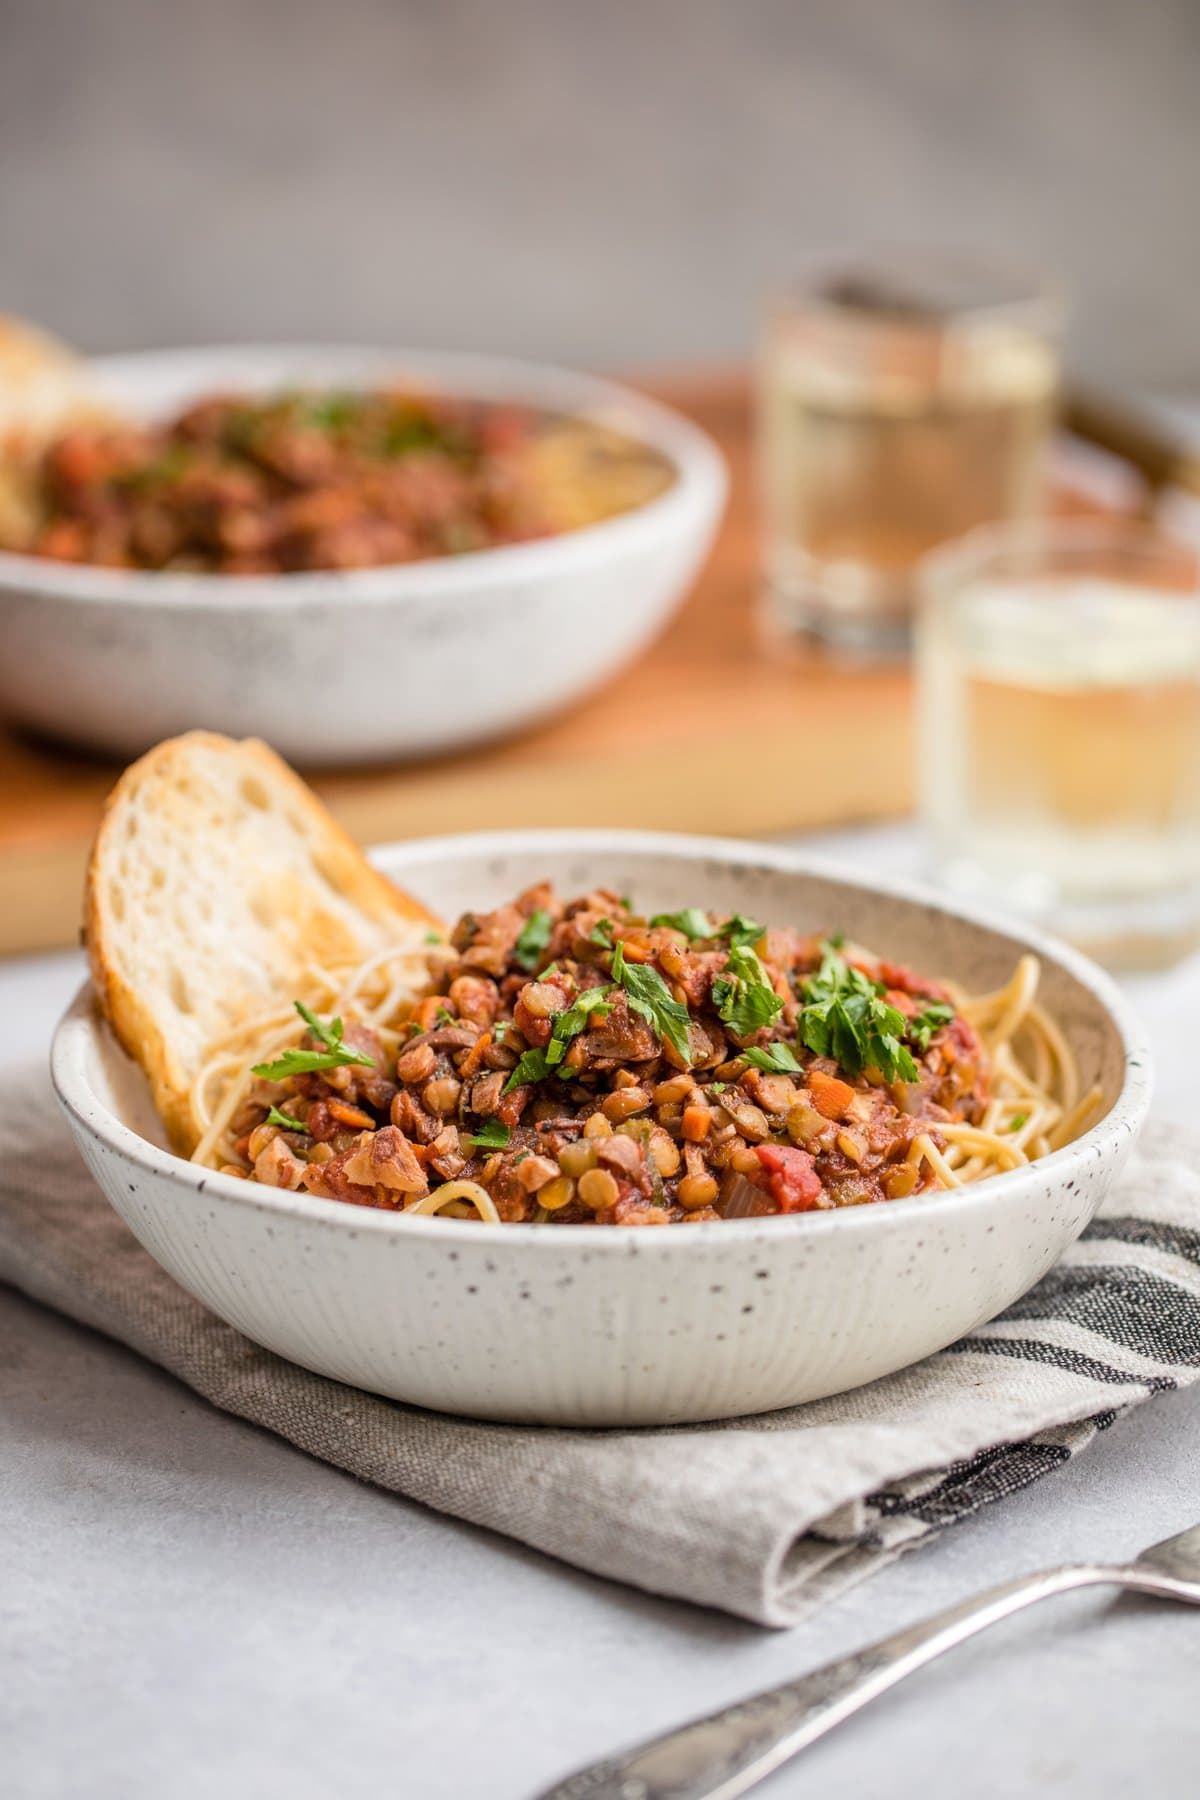 lentil bolognese topped with fresh parsley and garlic bread in speckled white bowl